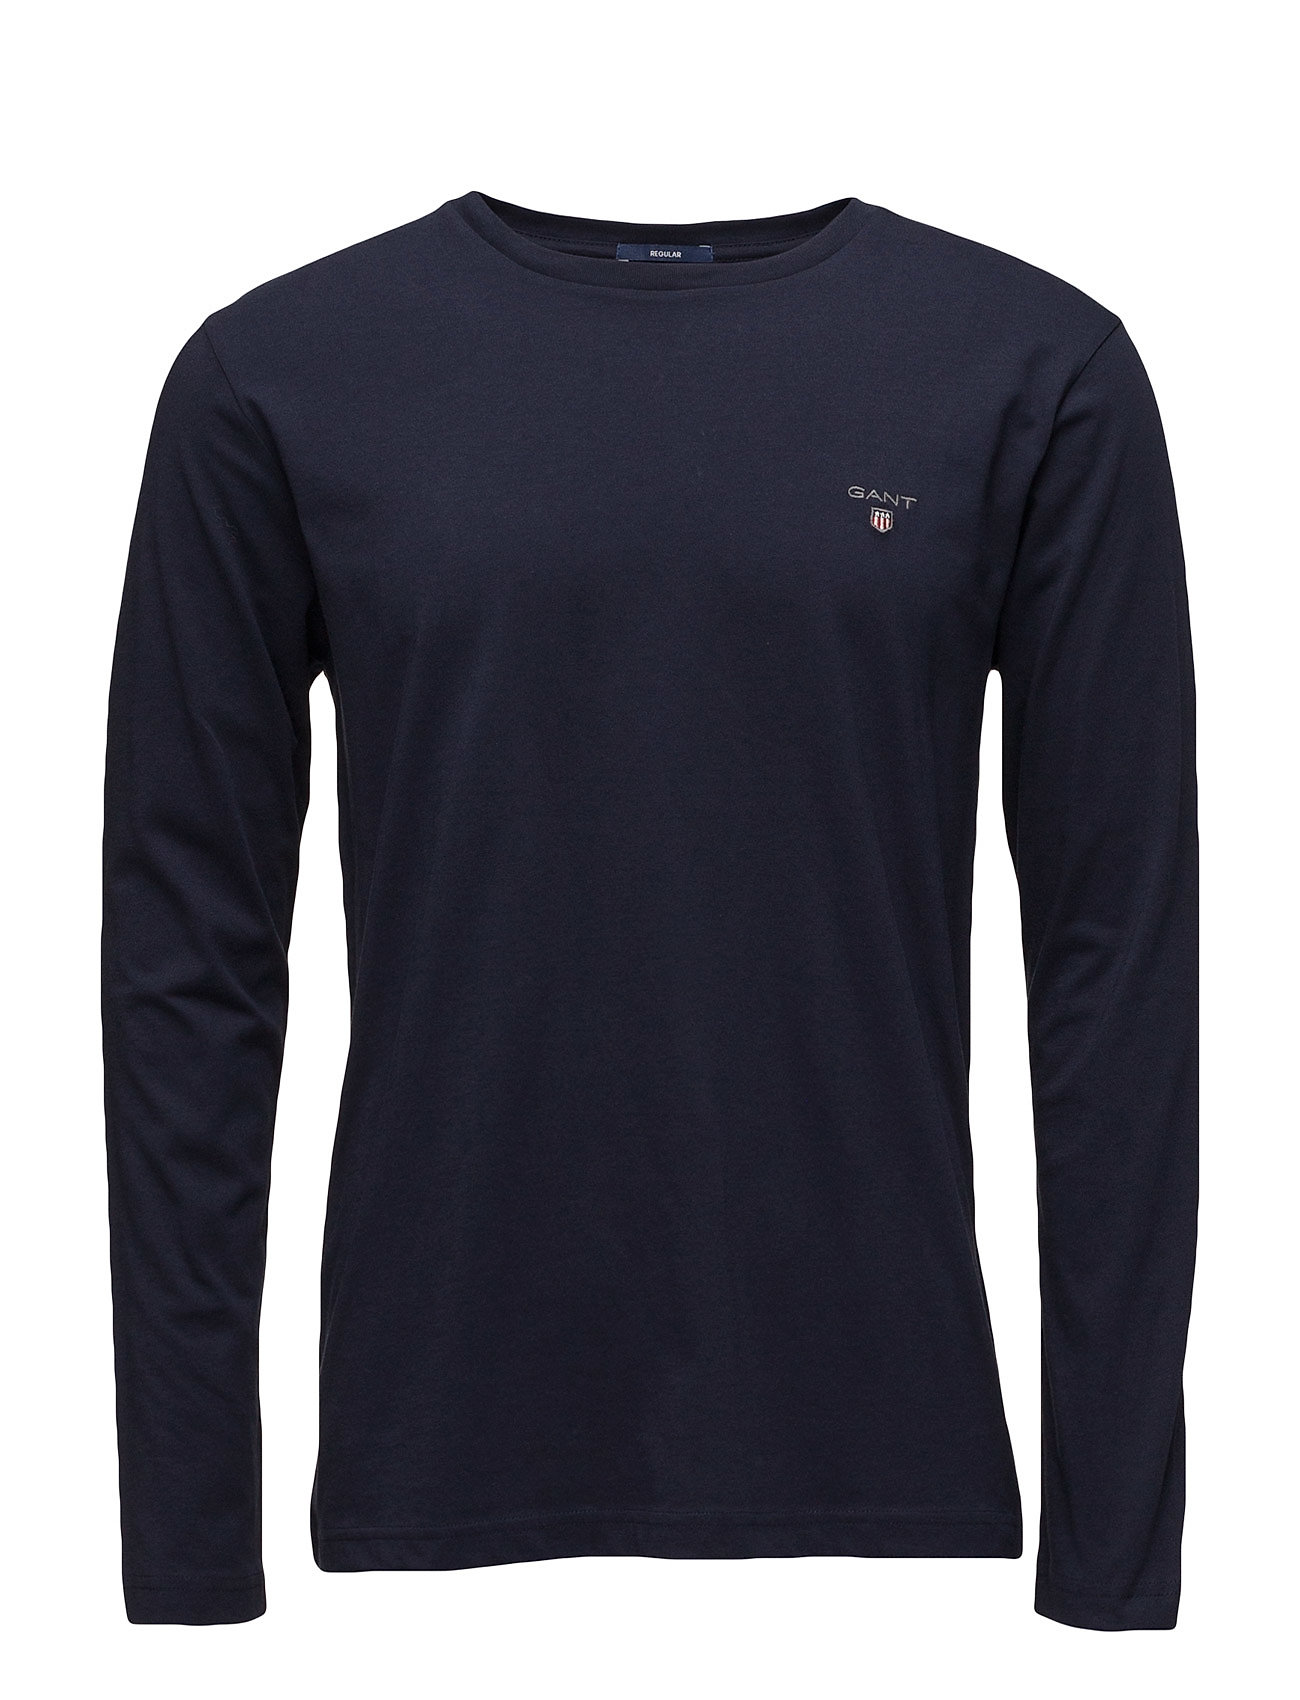 GANT THE ORIGINAL LS T-SHIRT